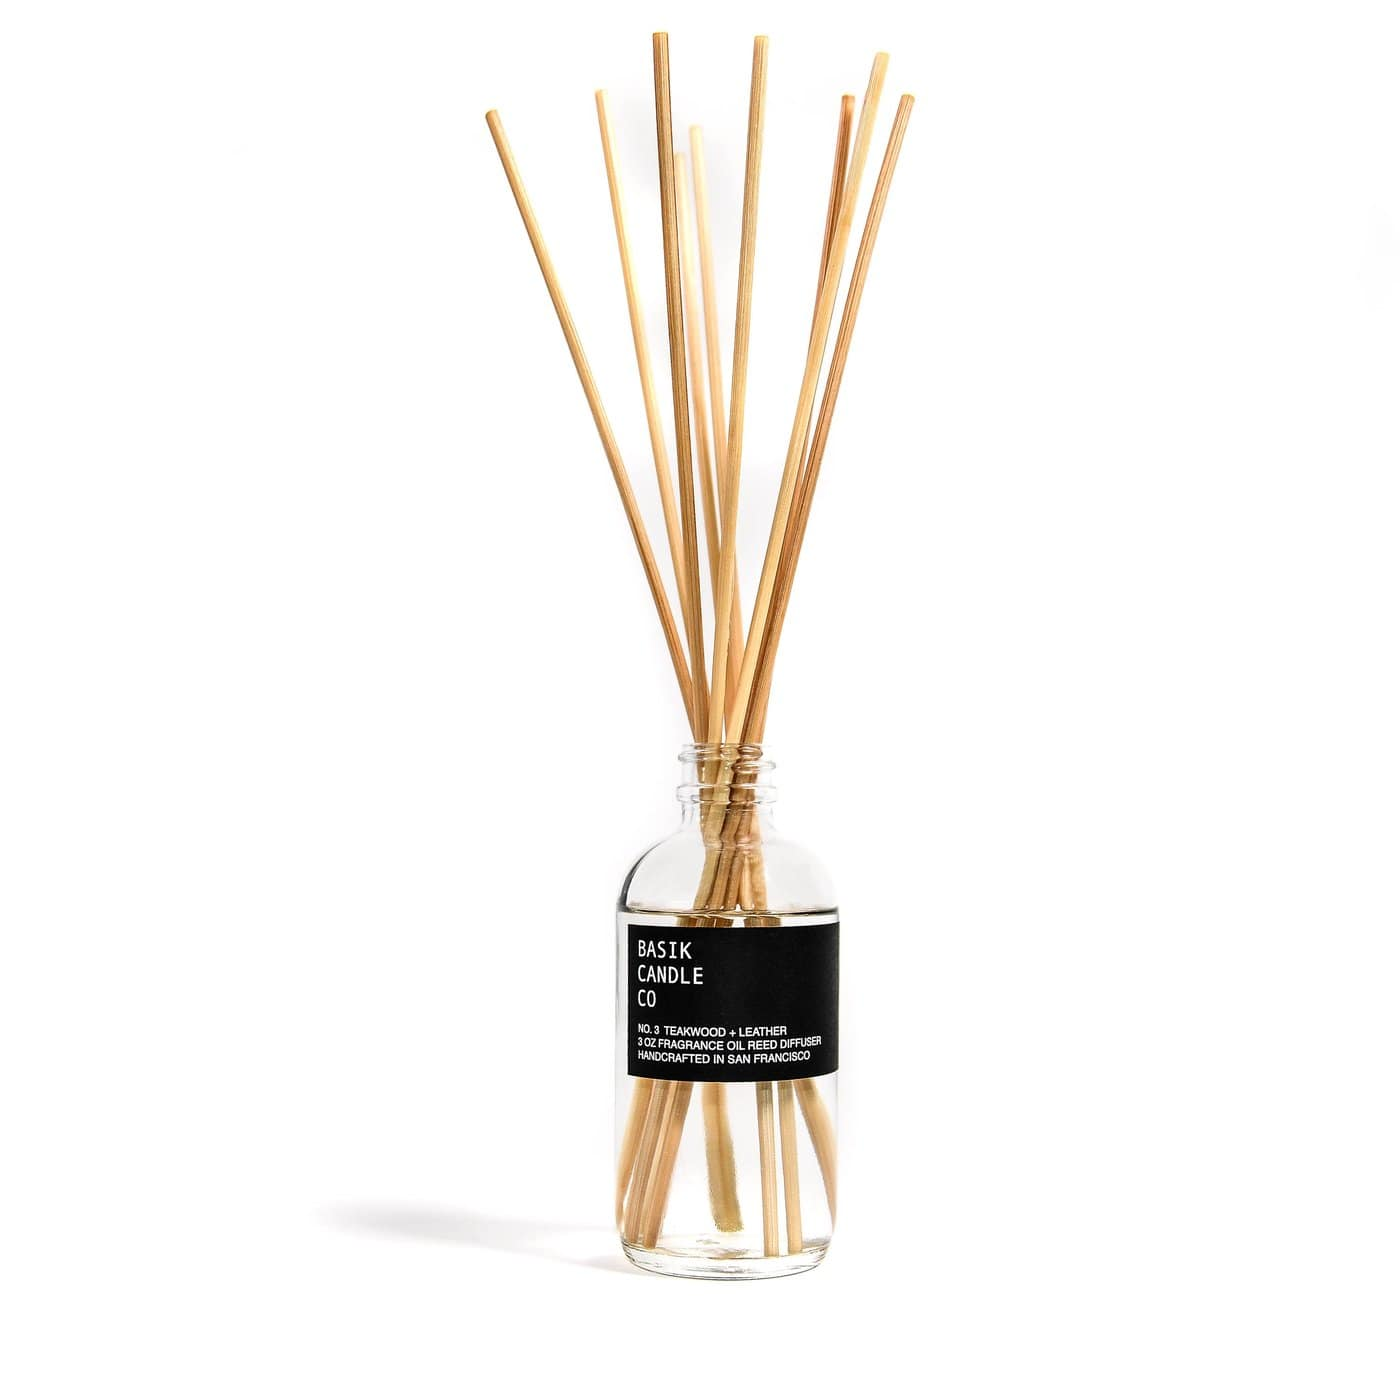 Basik Candle Co Candle No. 3 Teakwood + Leather Diffuser